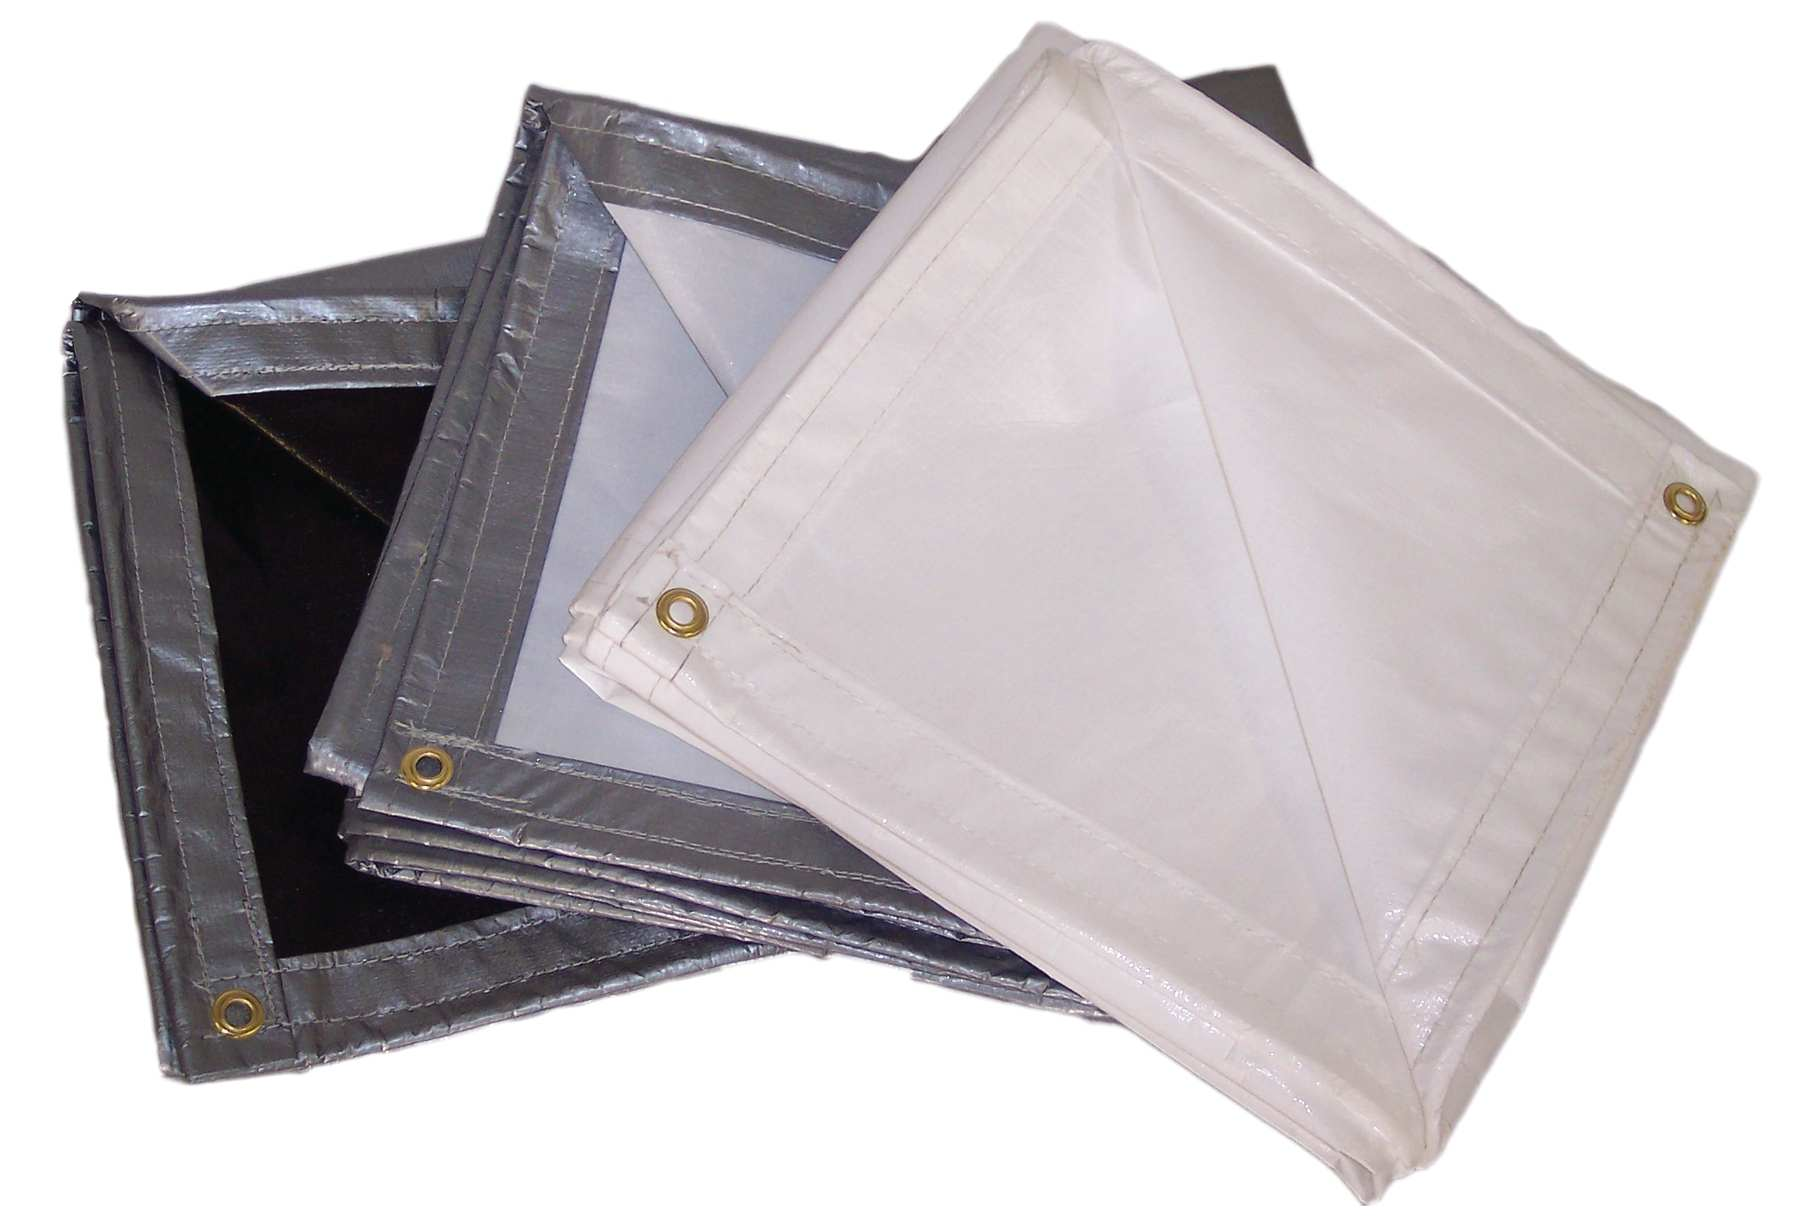 Heavy Duty Reinforced Polyethylene Tarps – 12 mil., 7 oz./sq. Yd.; Size (ft.) 10 x 20